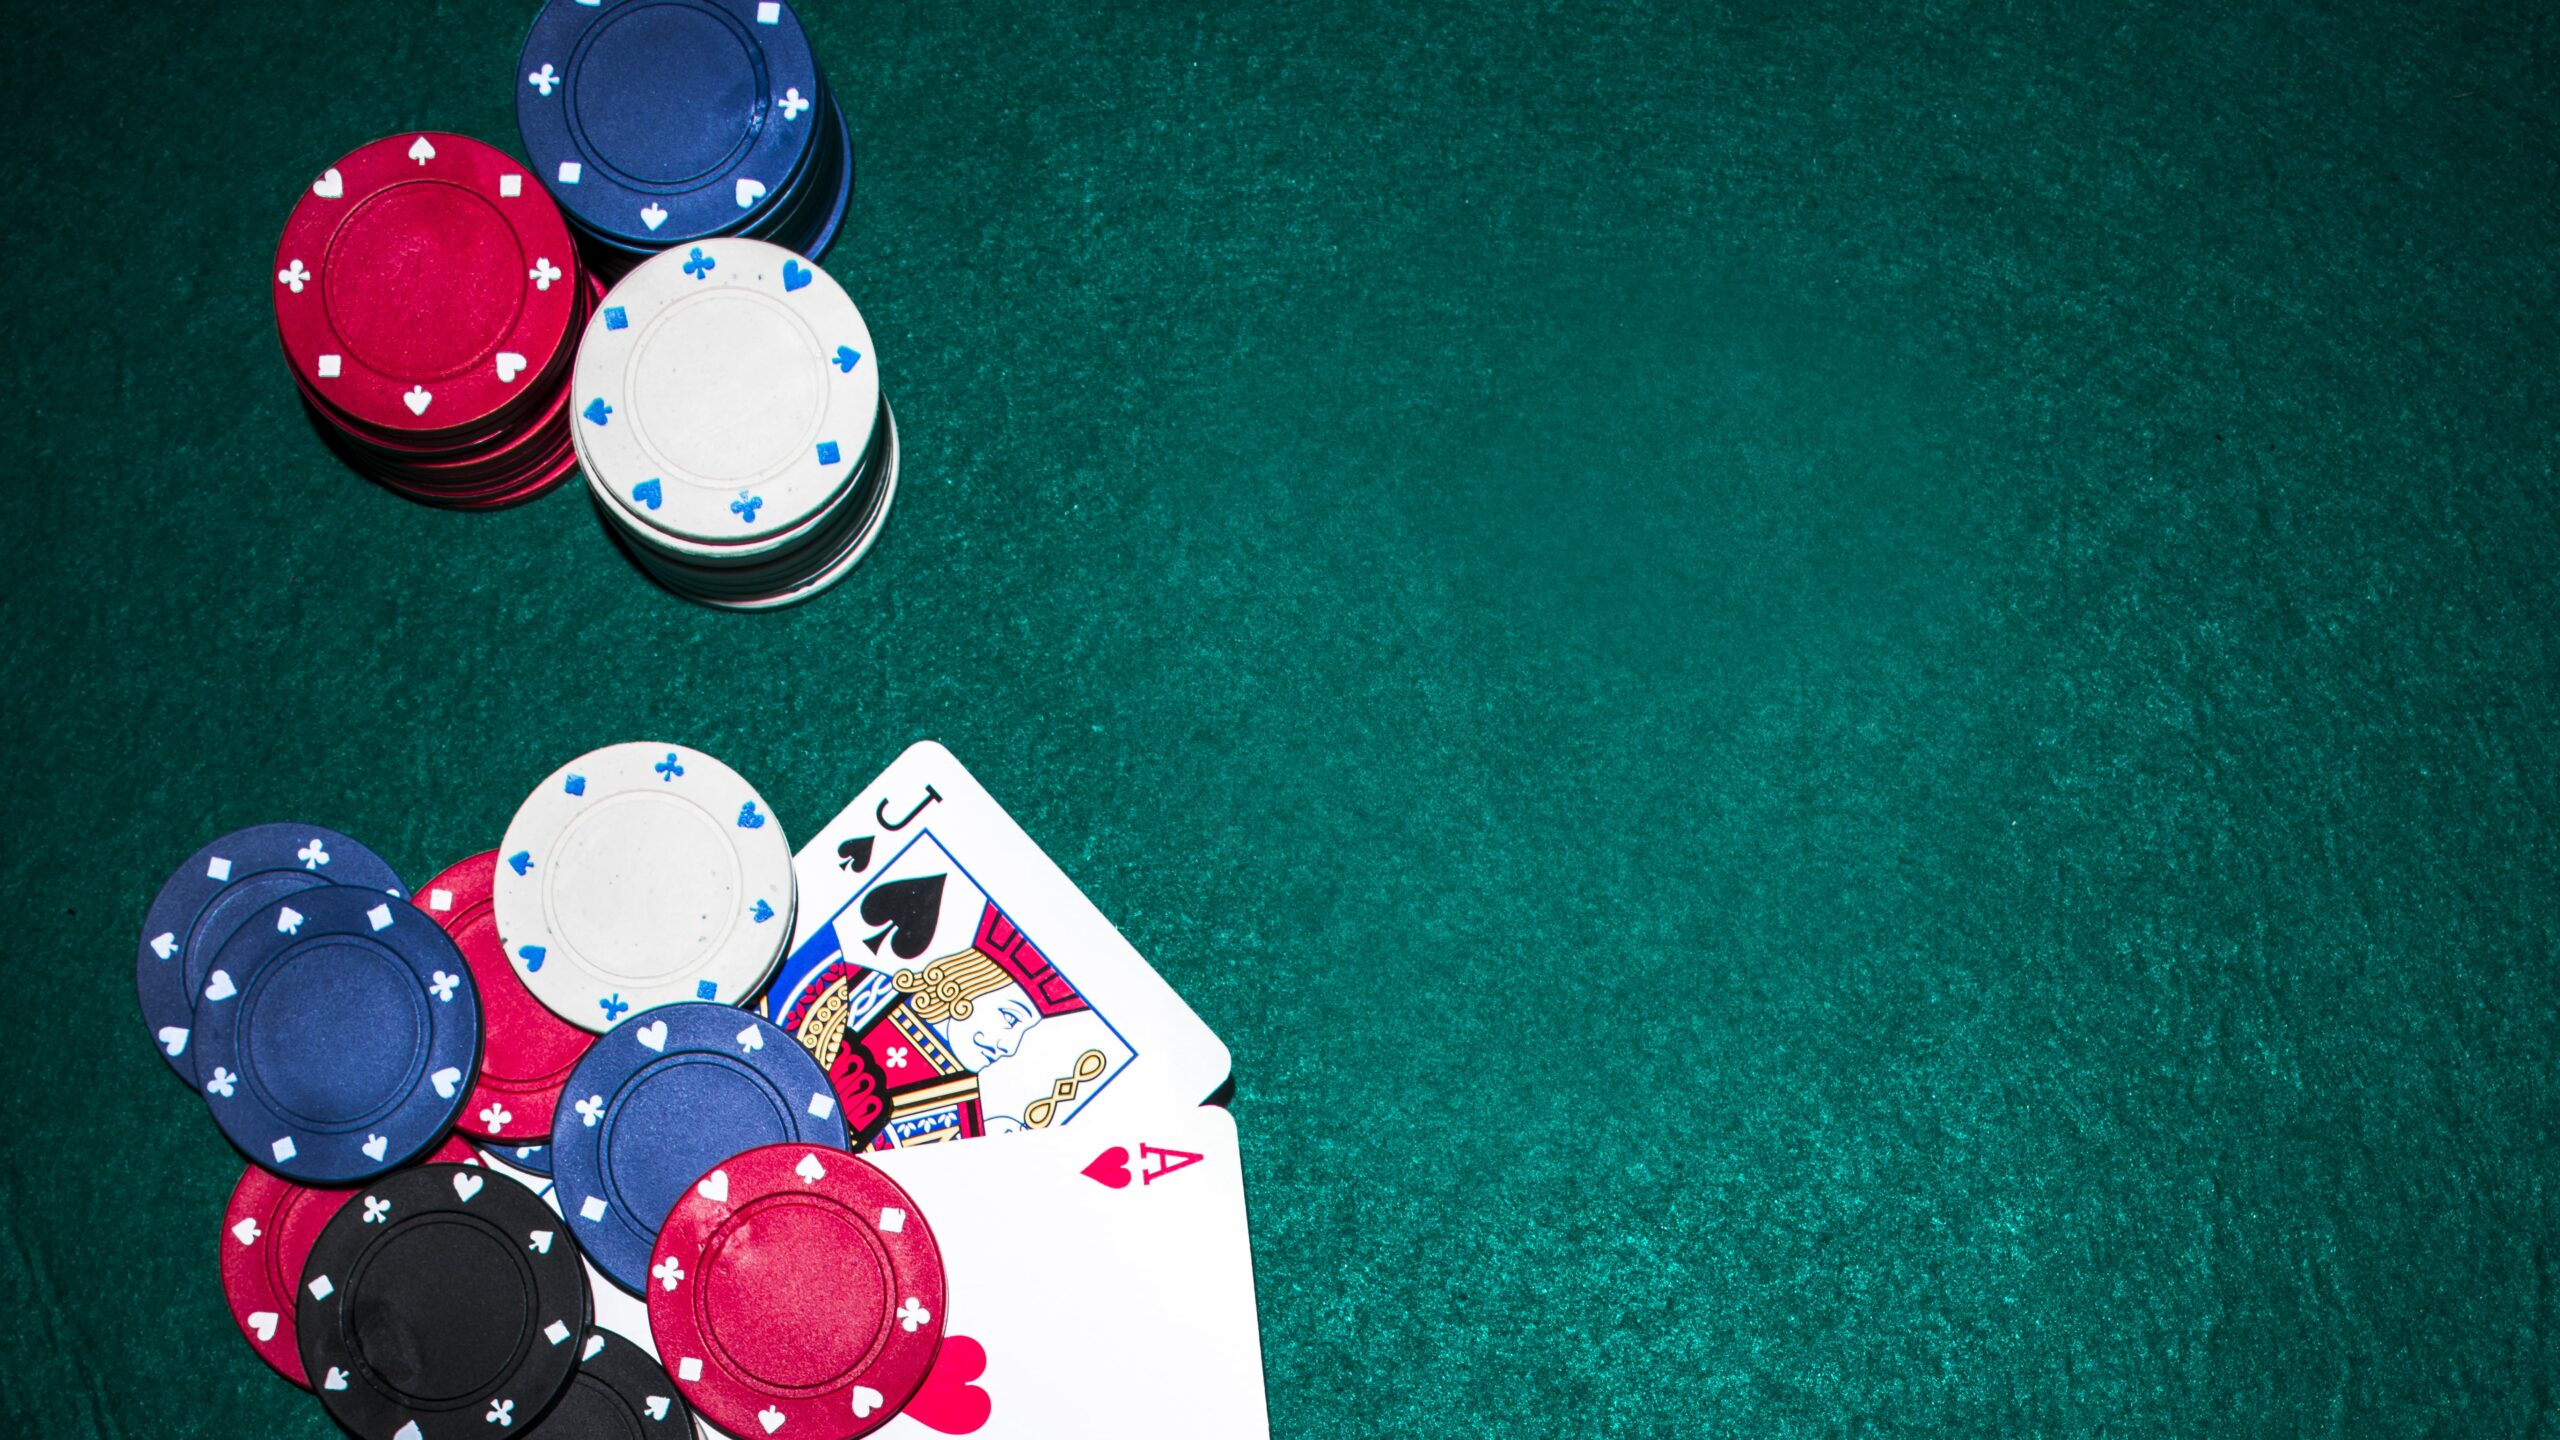 What to know while applying at the online card games site?